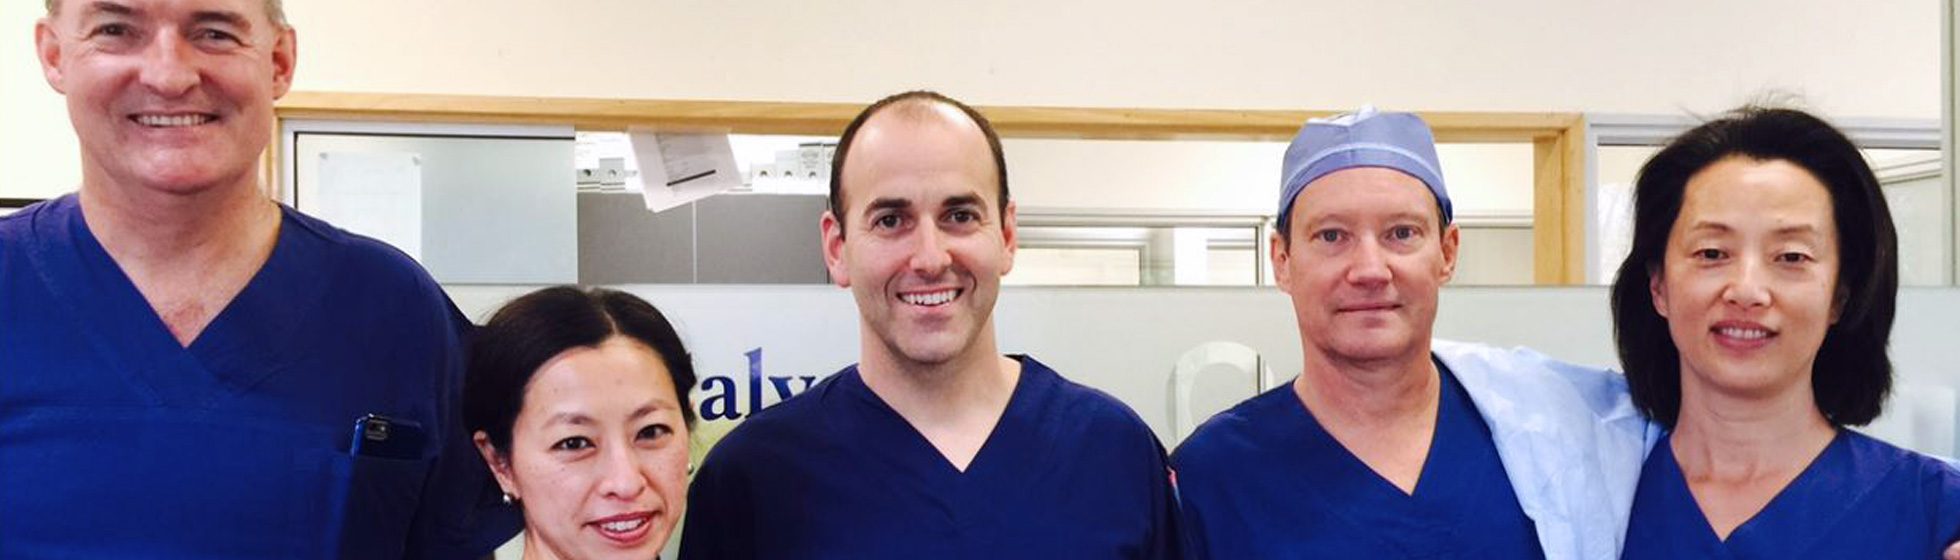 Surgeons and medical specialists in scrubs